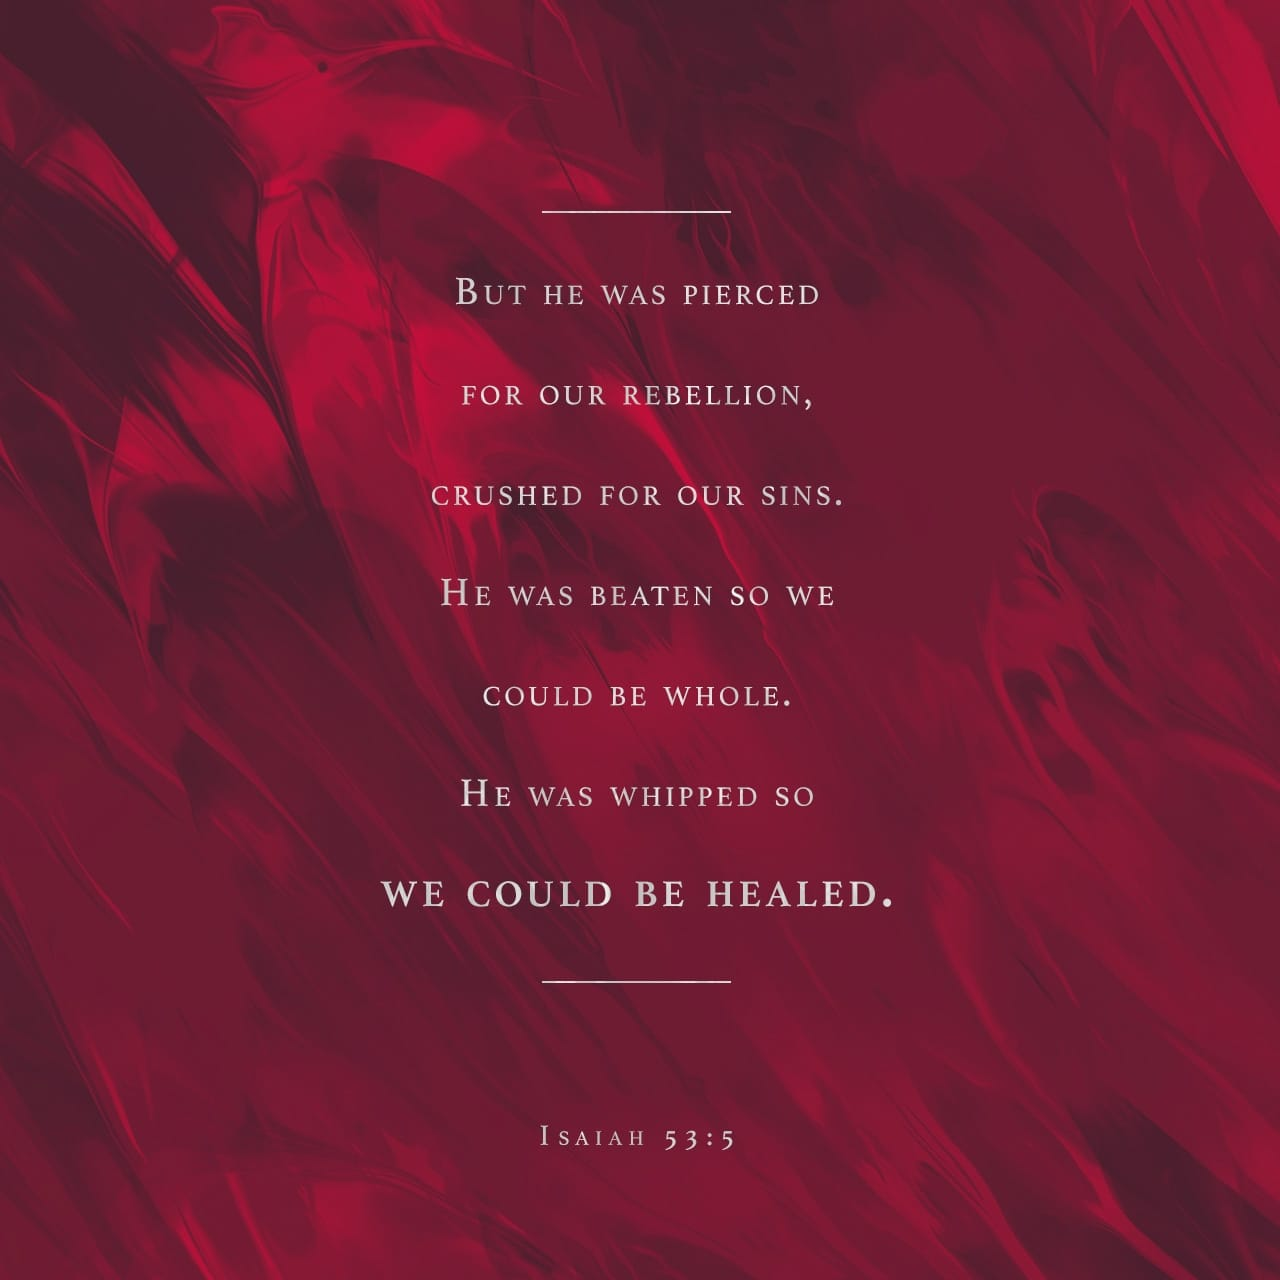 Isaiah 53:5 But He was wounded for our transgressions, He was bruised for our iniquities; The chastisement for our peace was upon Him, And by His stripes we are healed. | New King James Version (NKJV)